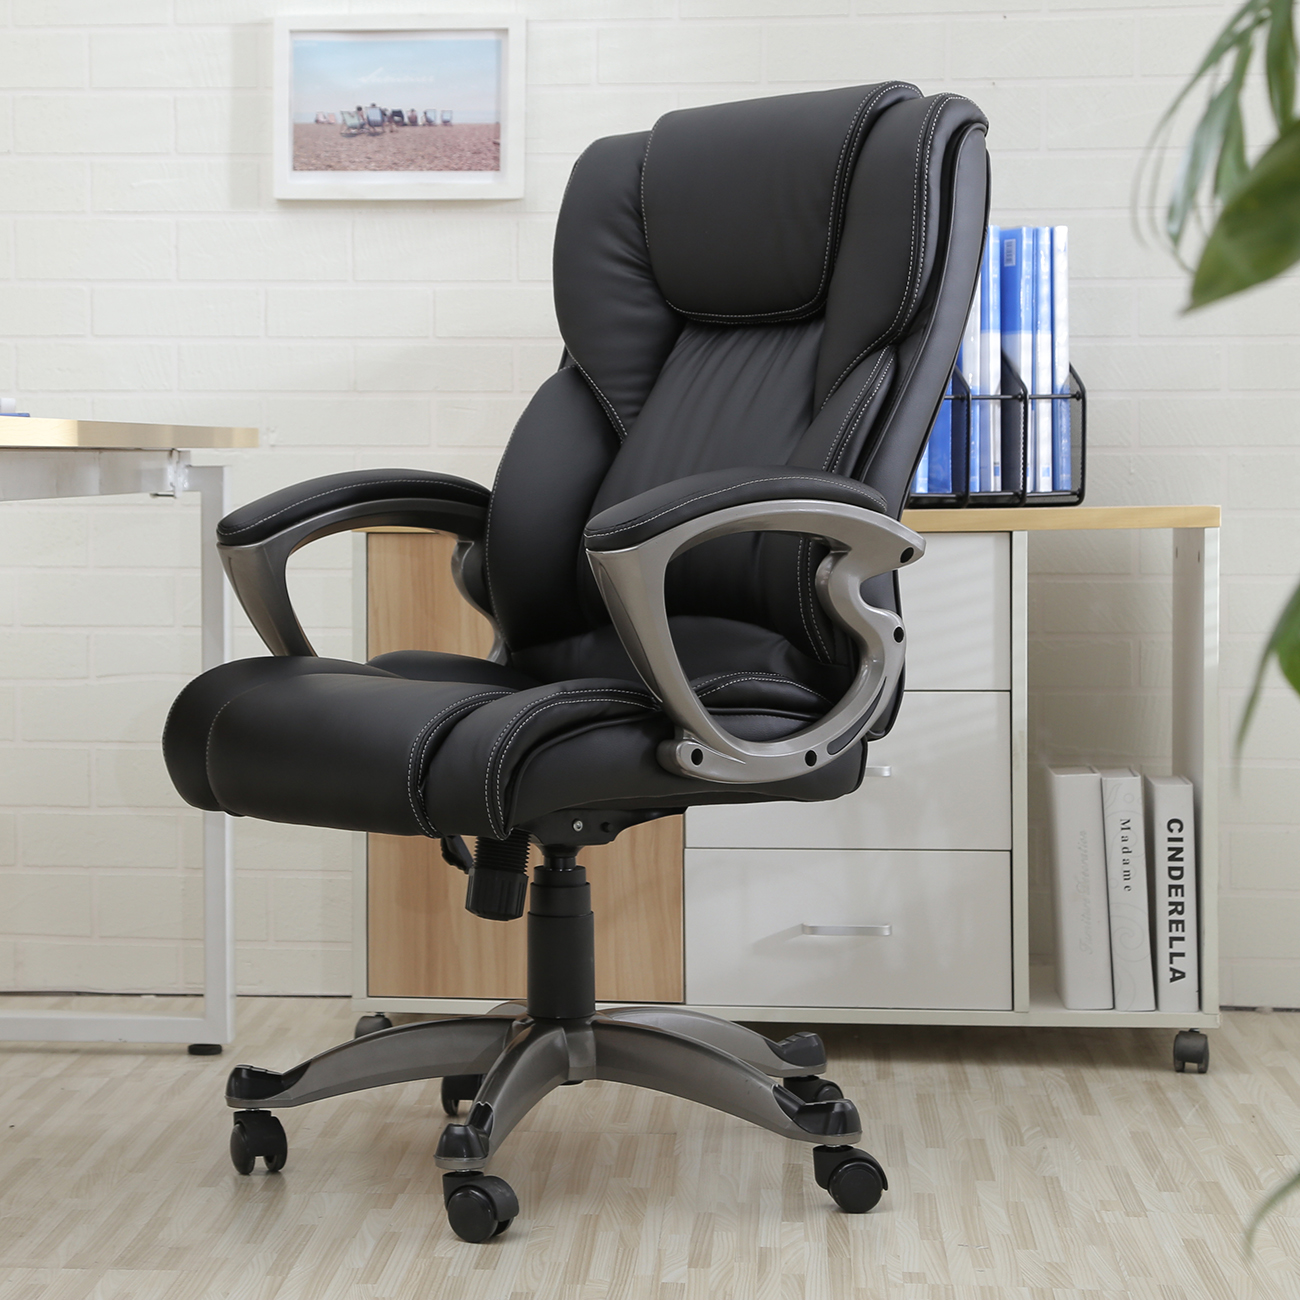 Leather Executive Office Chair High Back: Functionality and Comfort at Its Finest